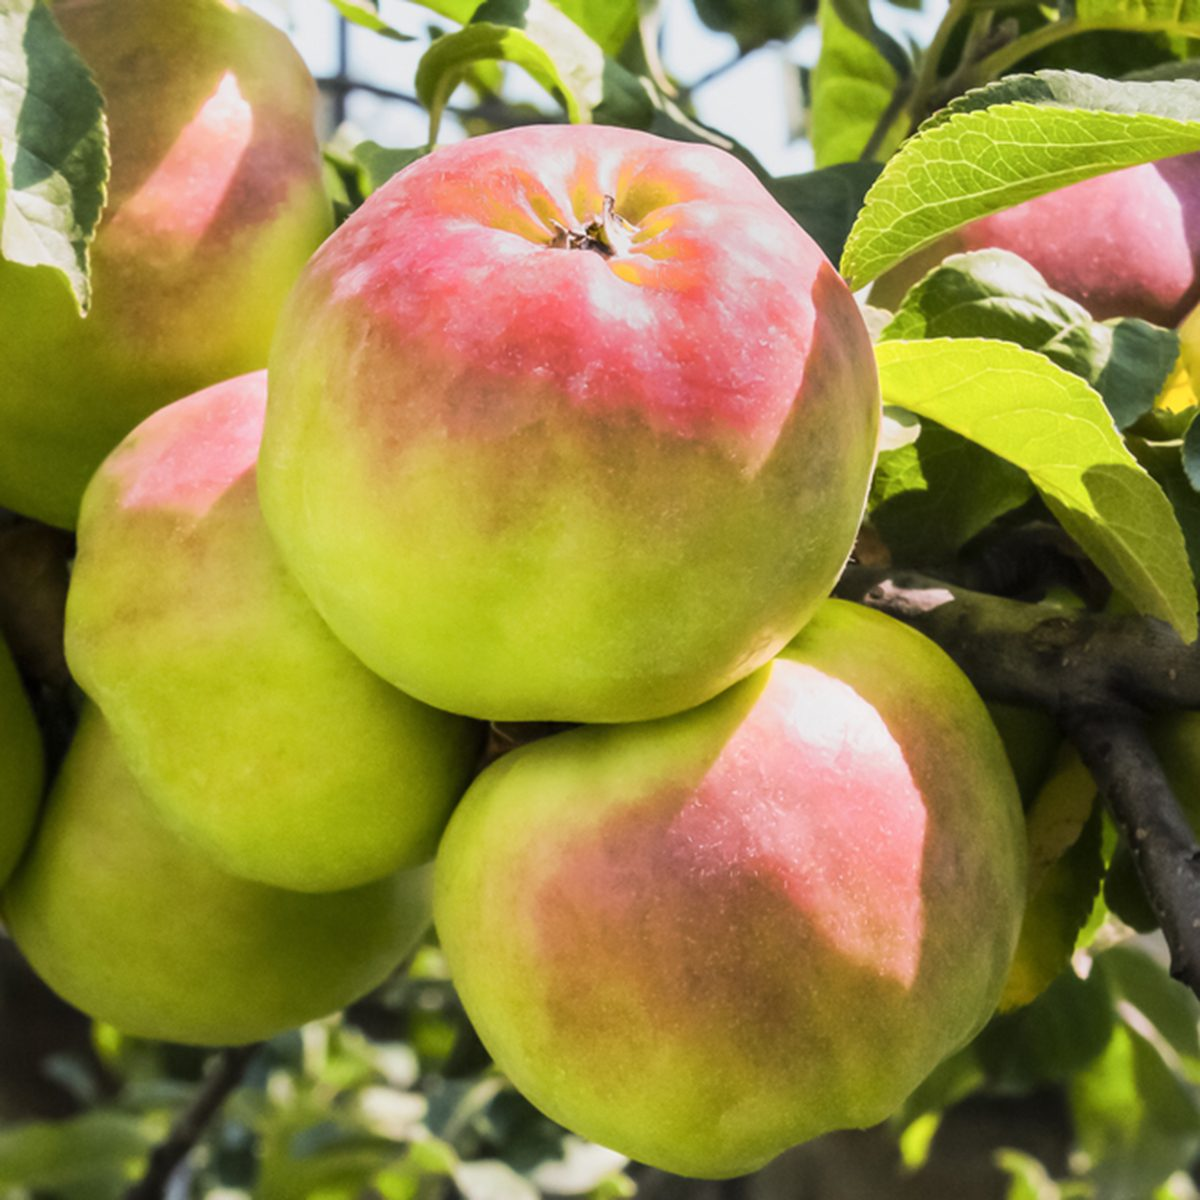 abundantly growing maturing large apples